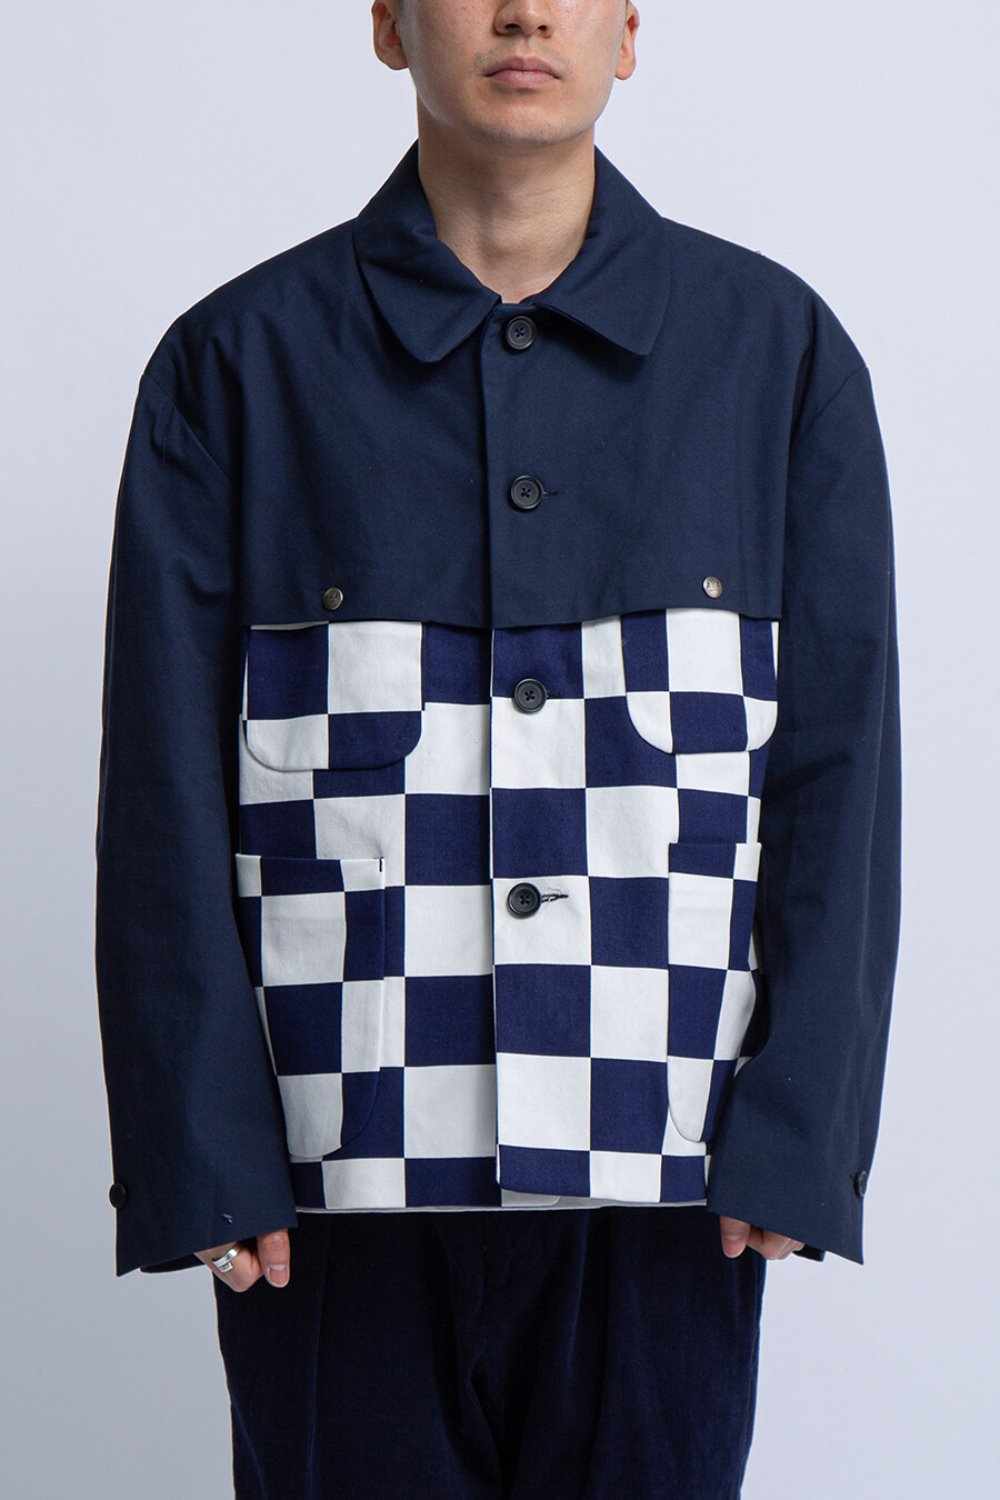 THT JACKET NAVY/WHITE 9oz CHECKER